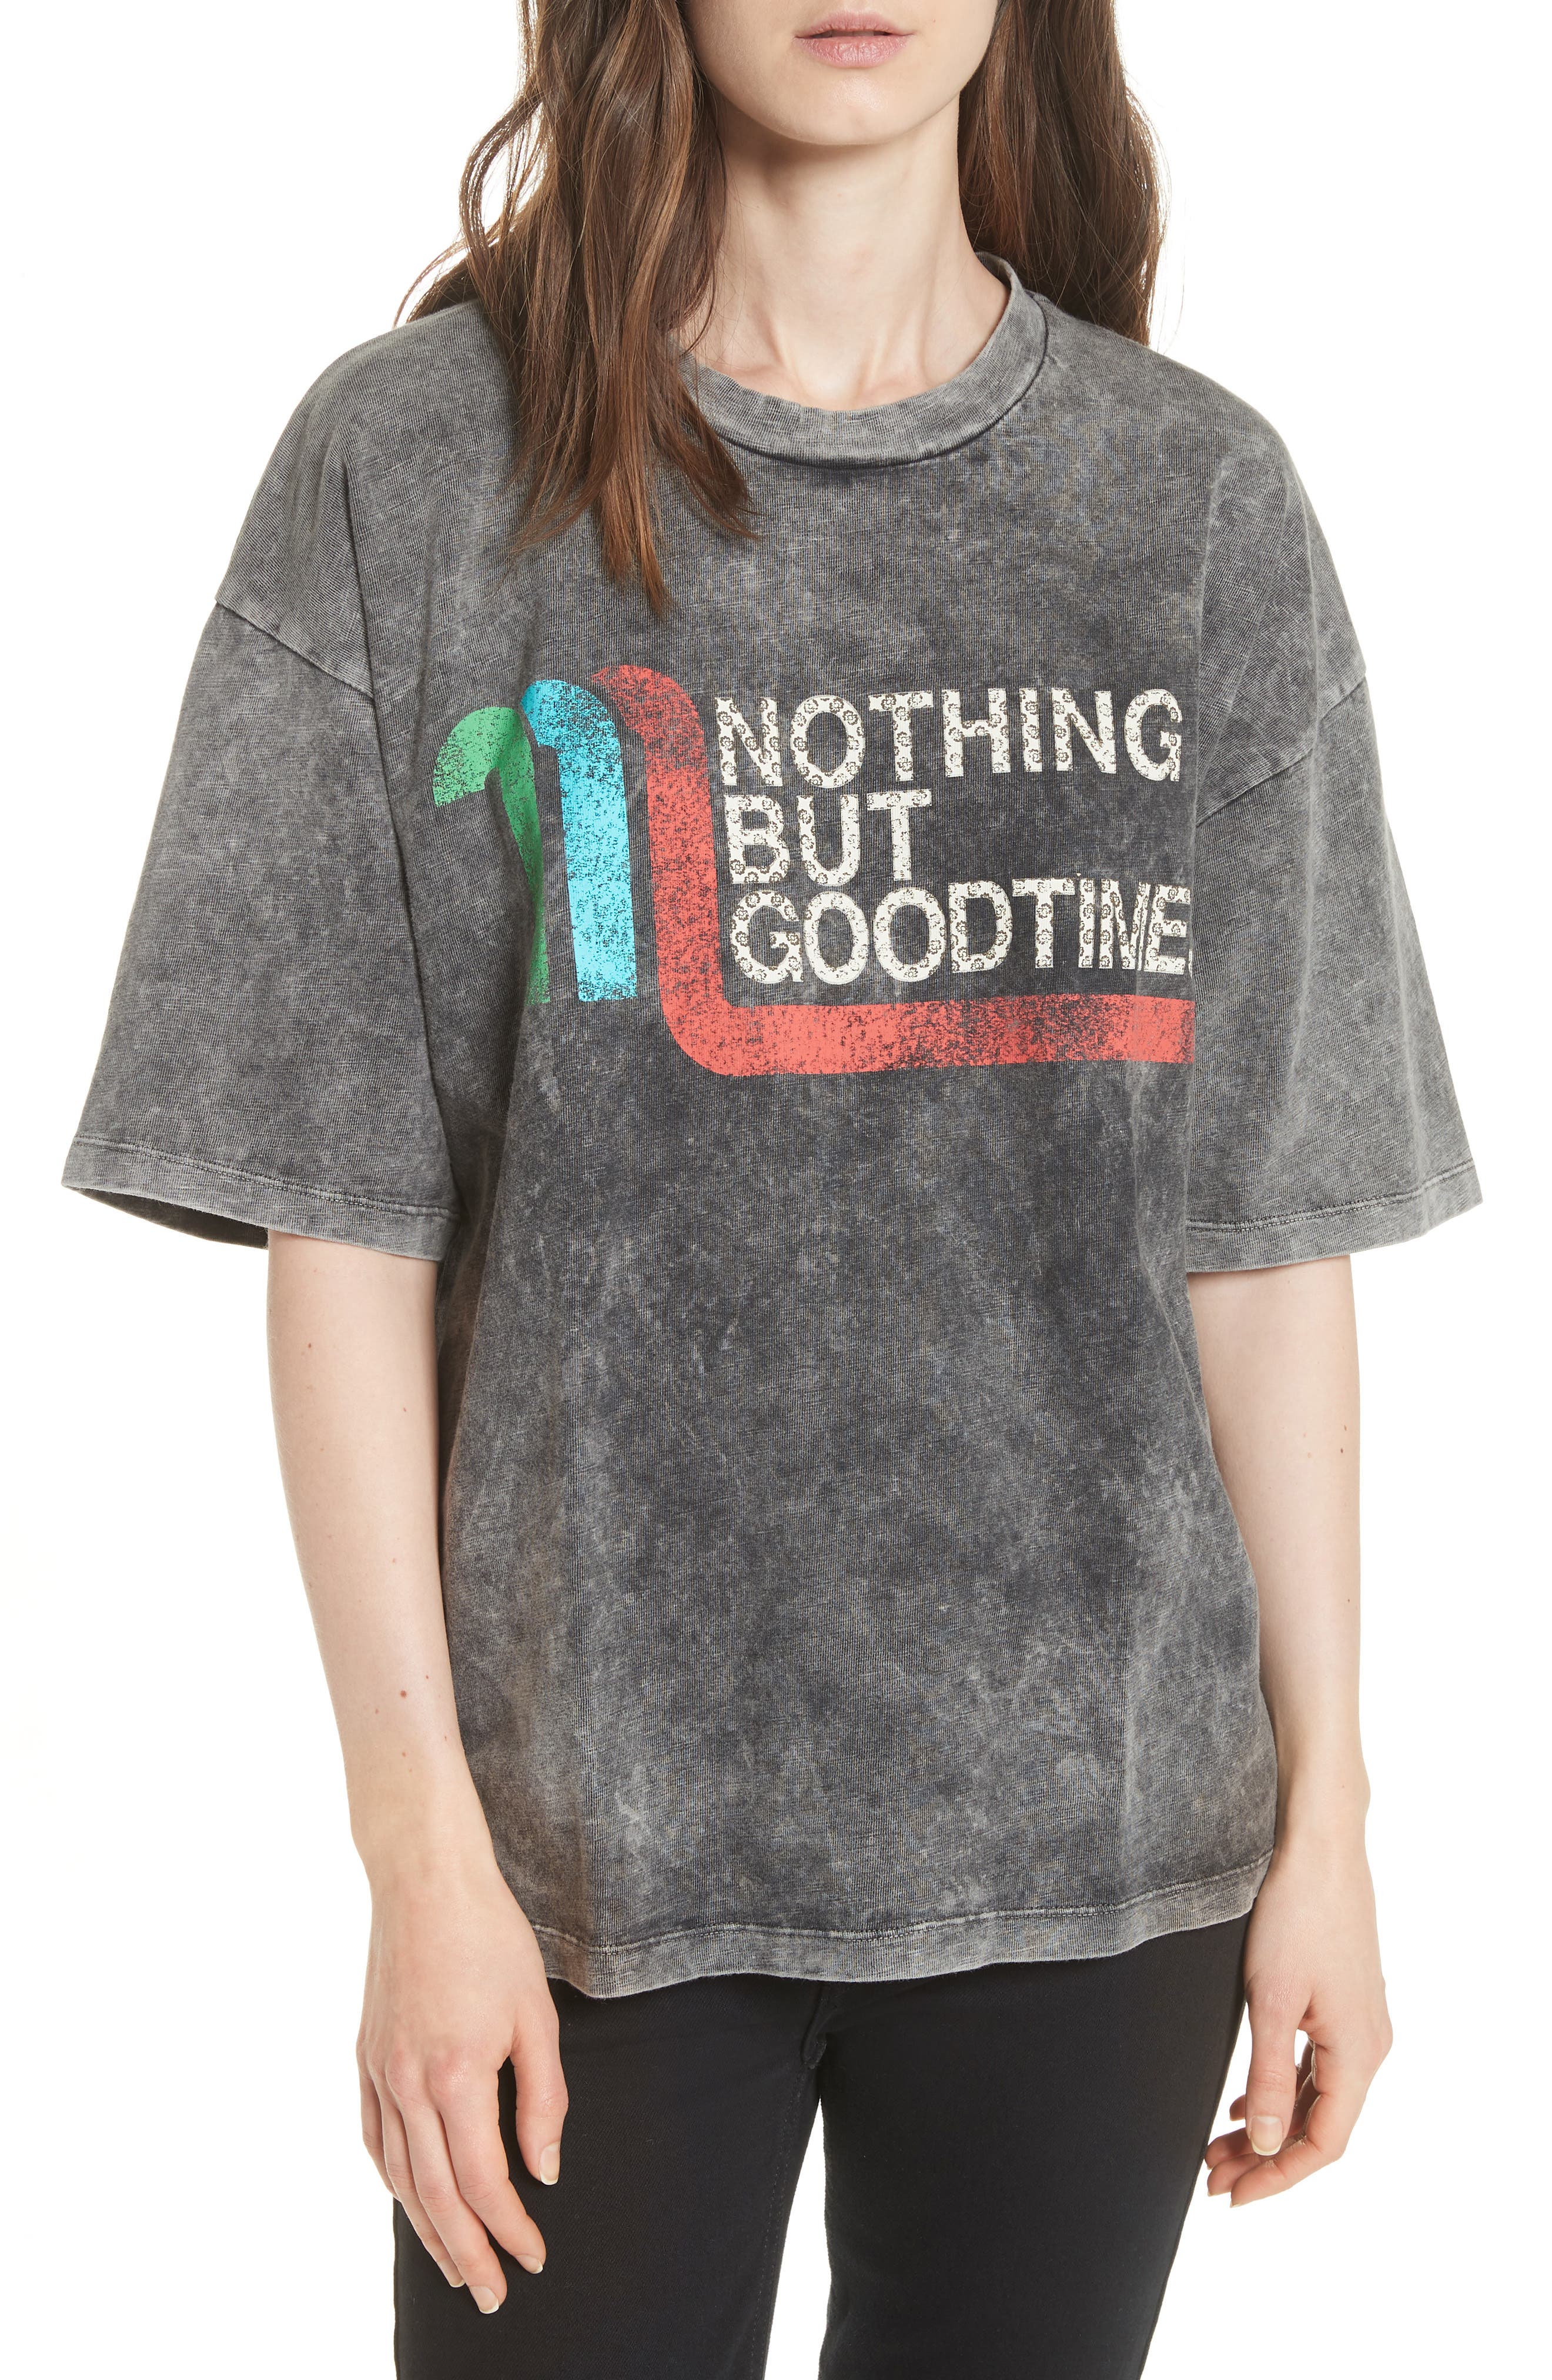 Main Image - maje Nothing But Good Times Tee